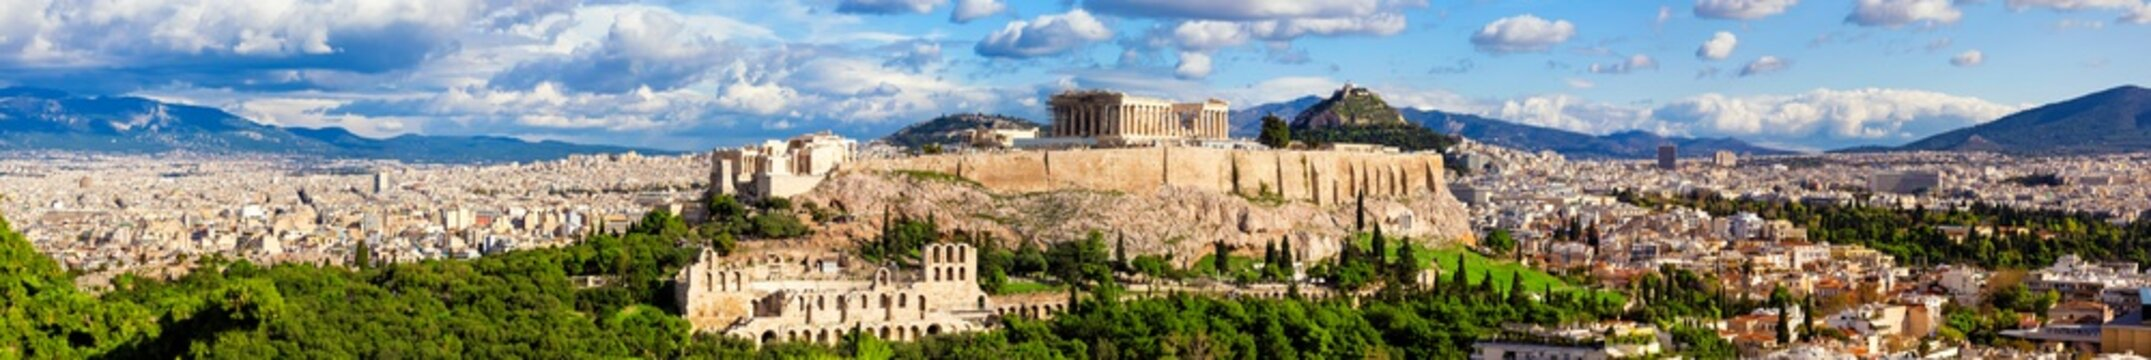 Panorama of Athens with Acropolis hill.